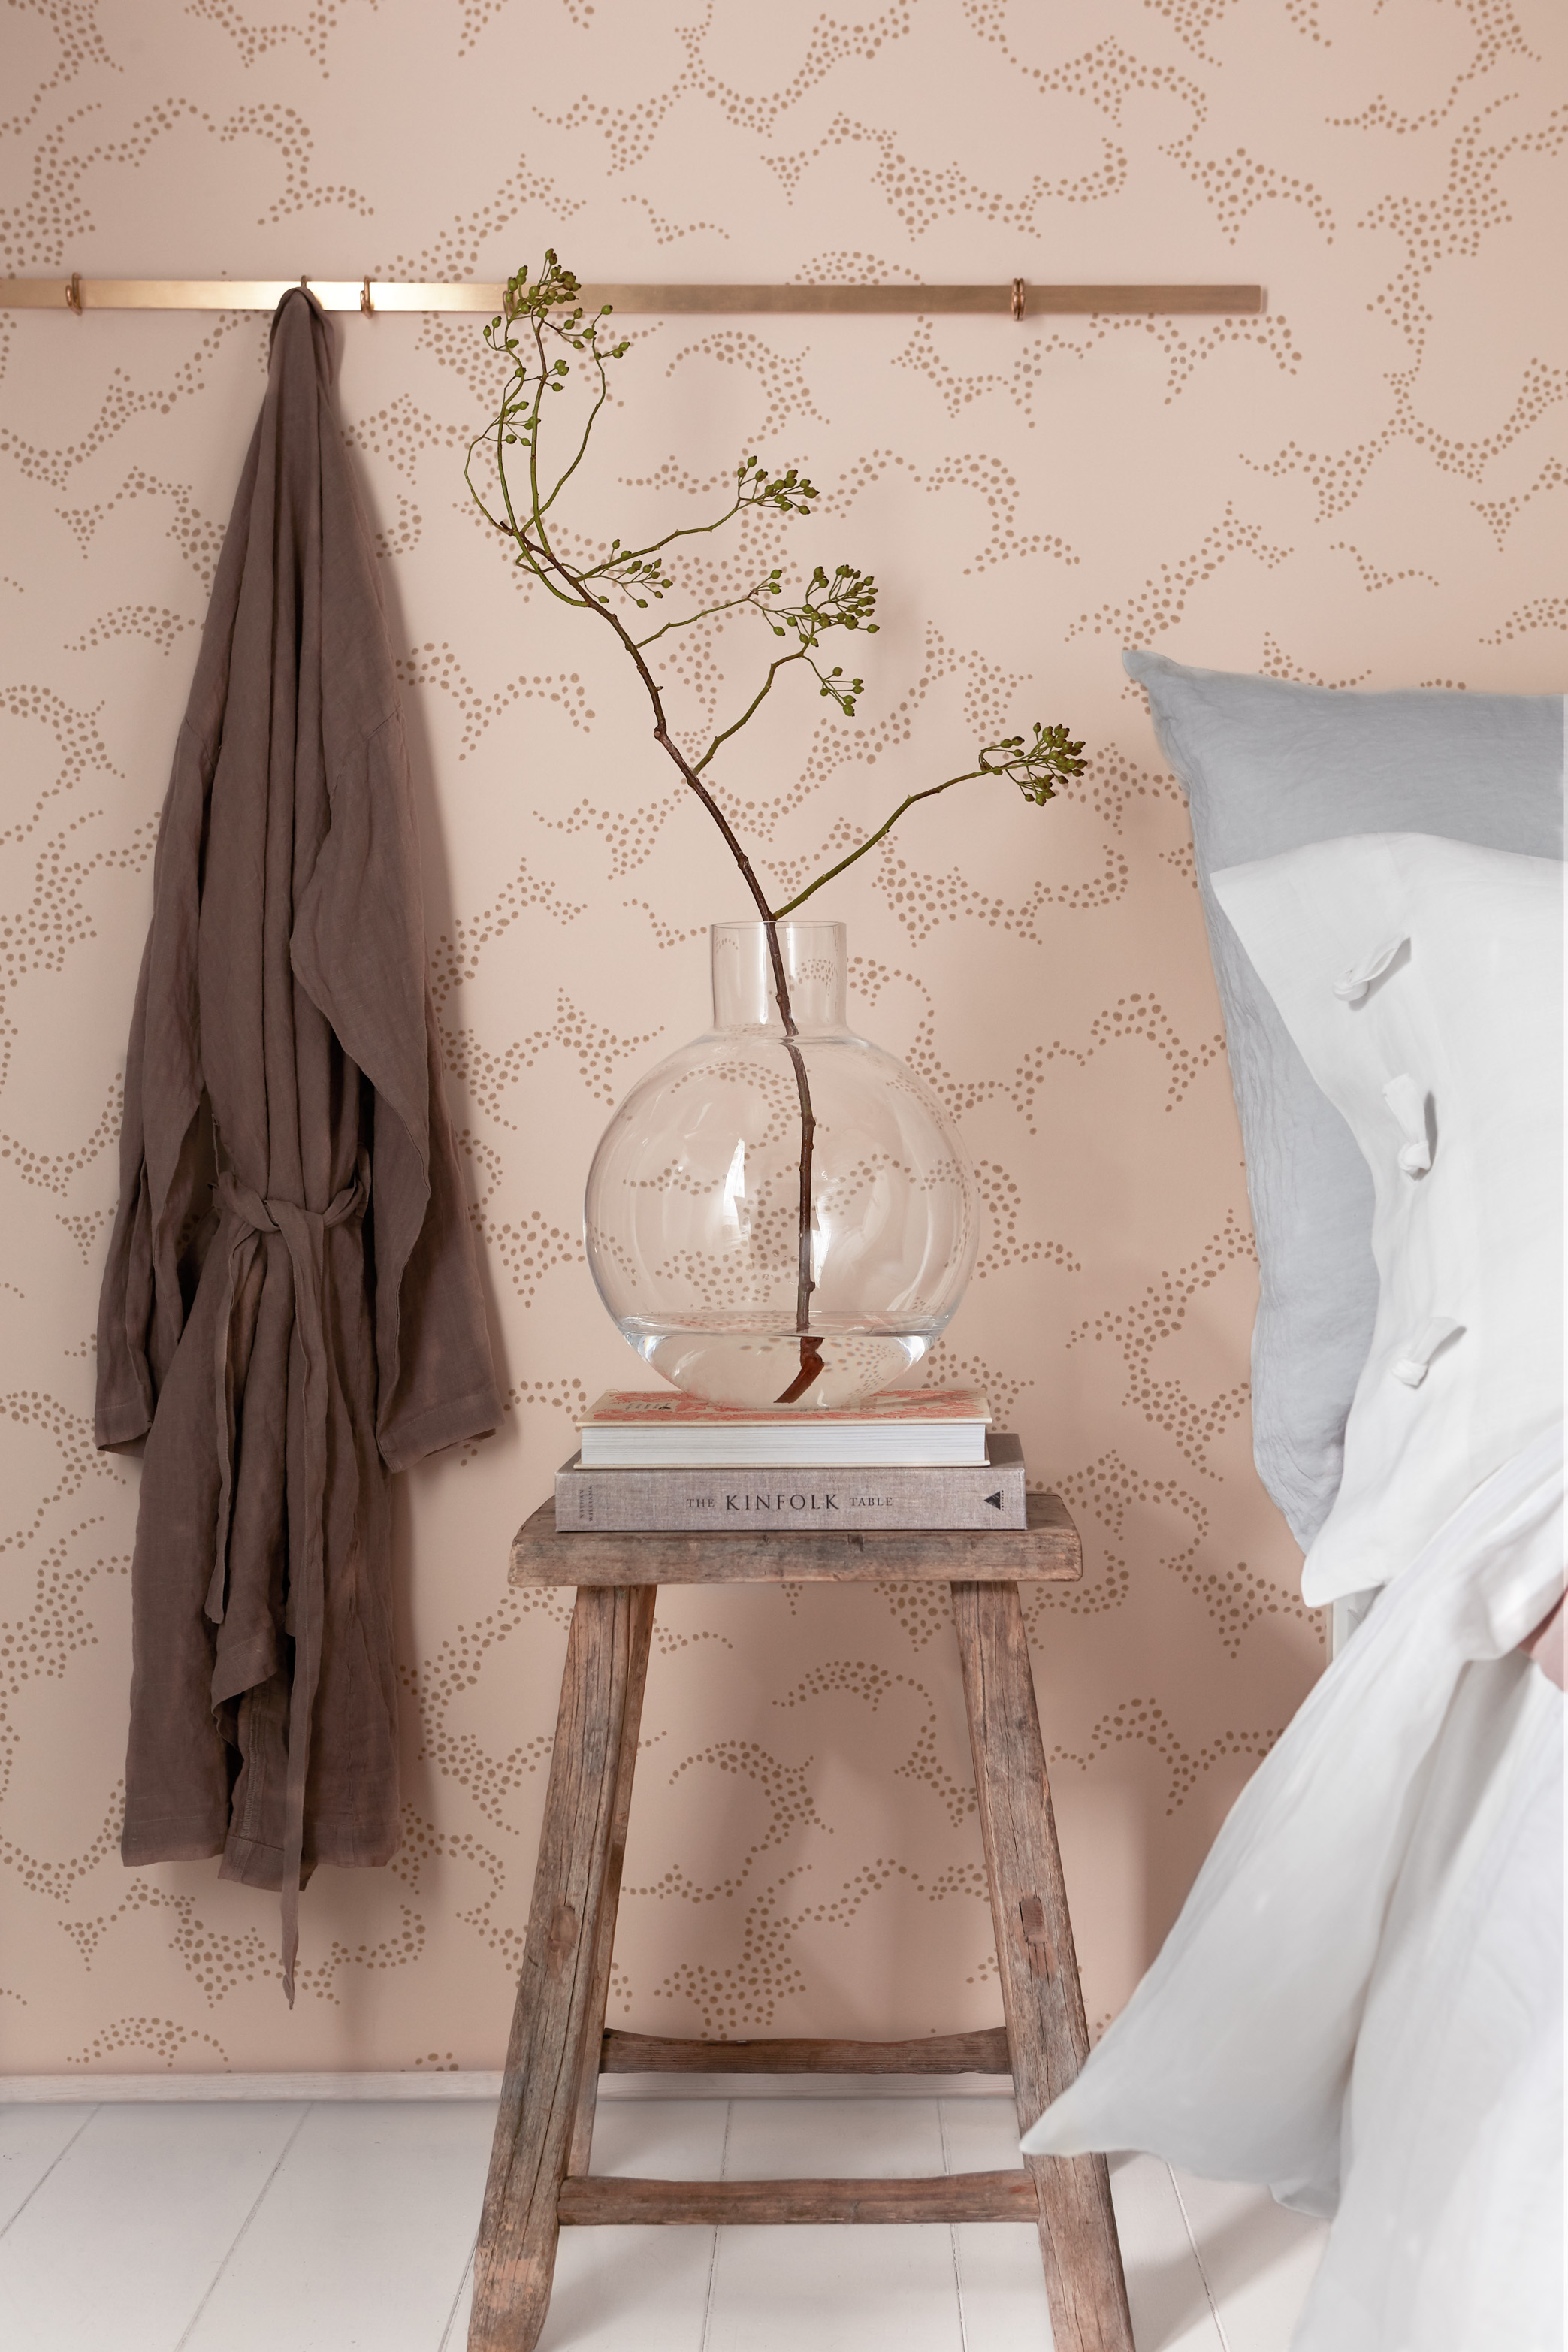 Hanna_Werning_Wonderland_Molntuss_Bedroom_Detail